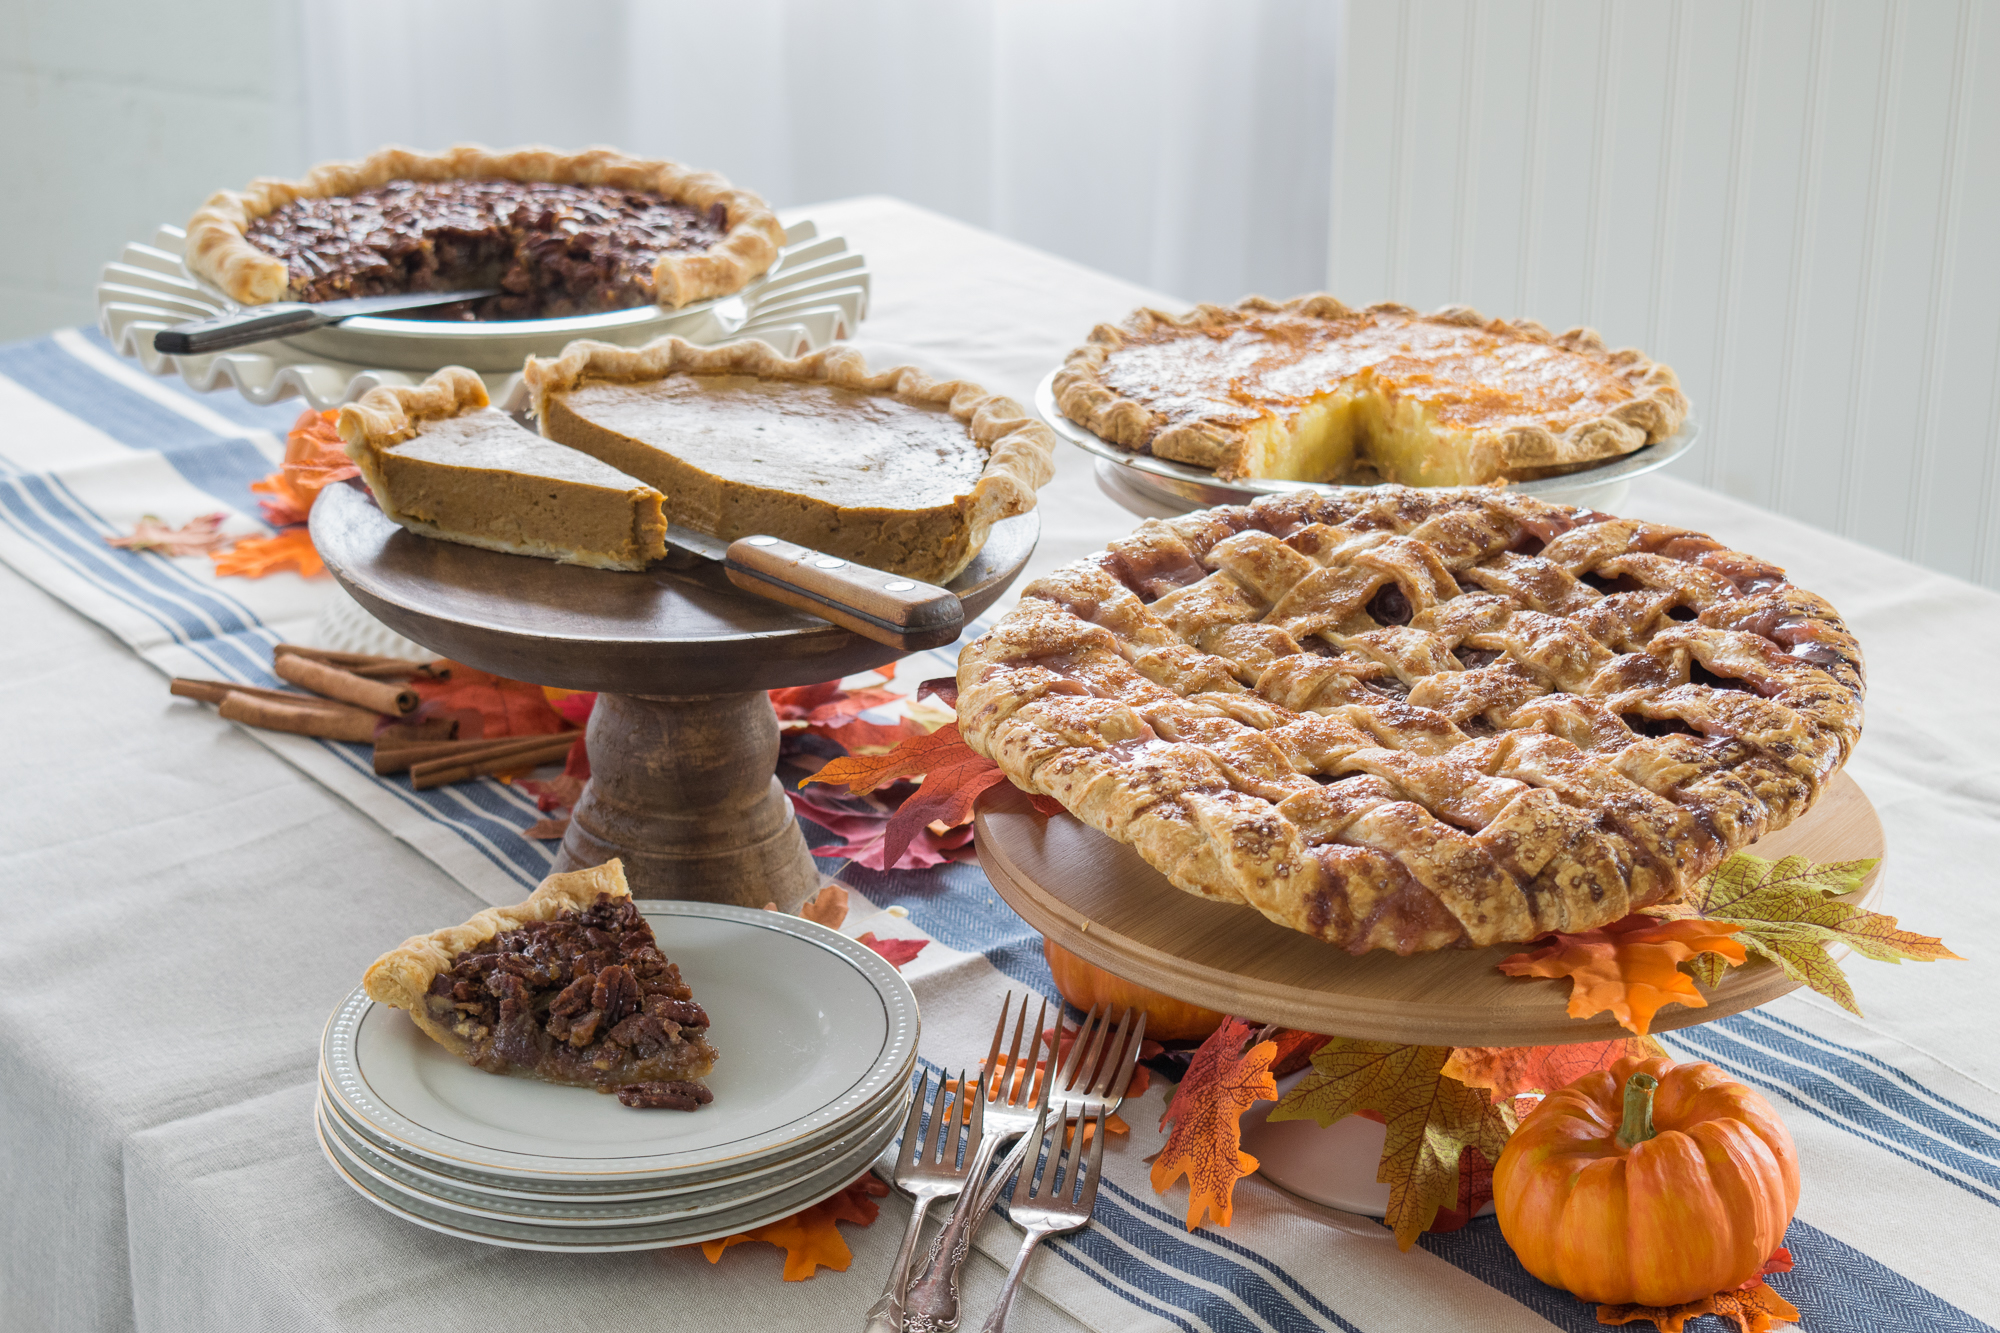 Whole Pies for the Holidays Image